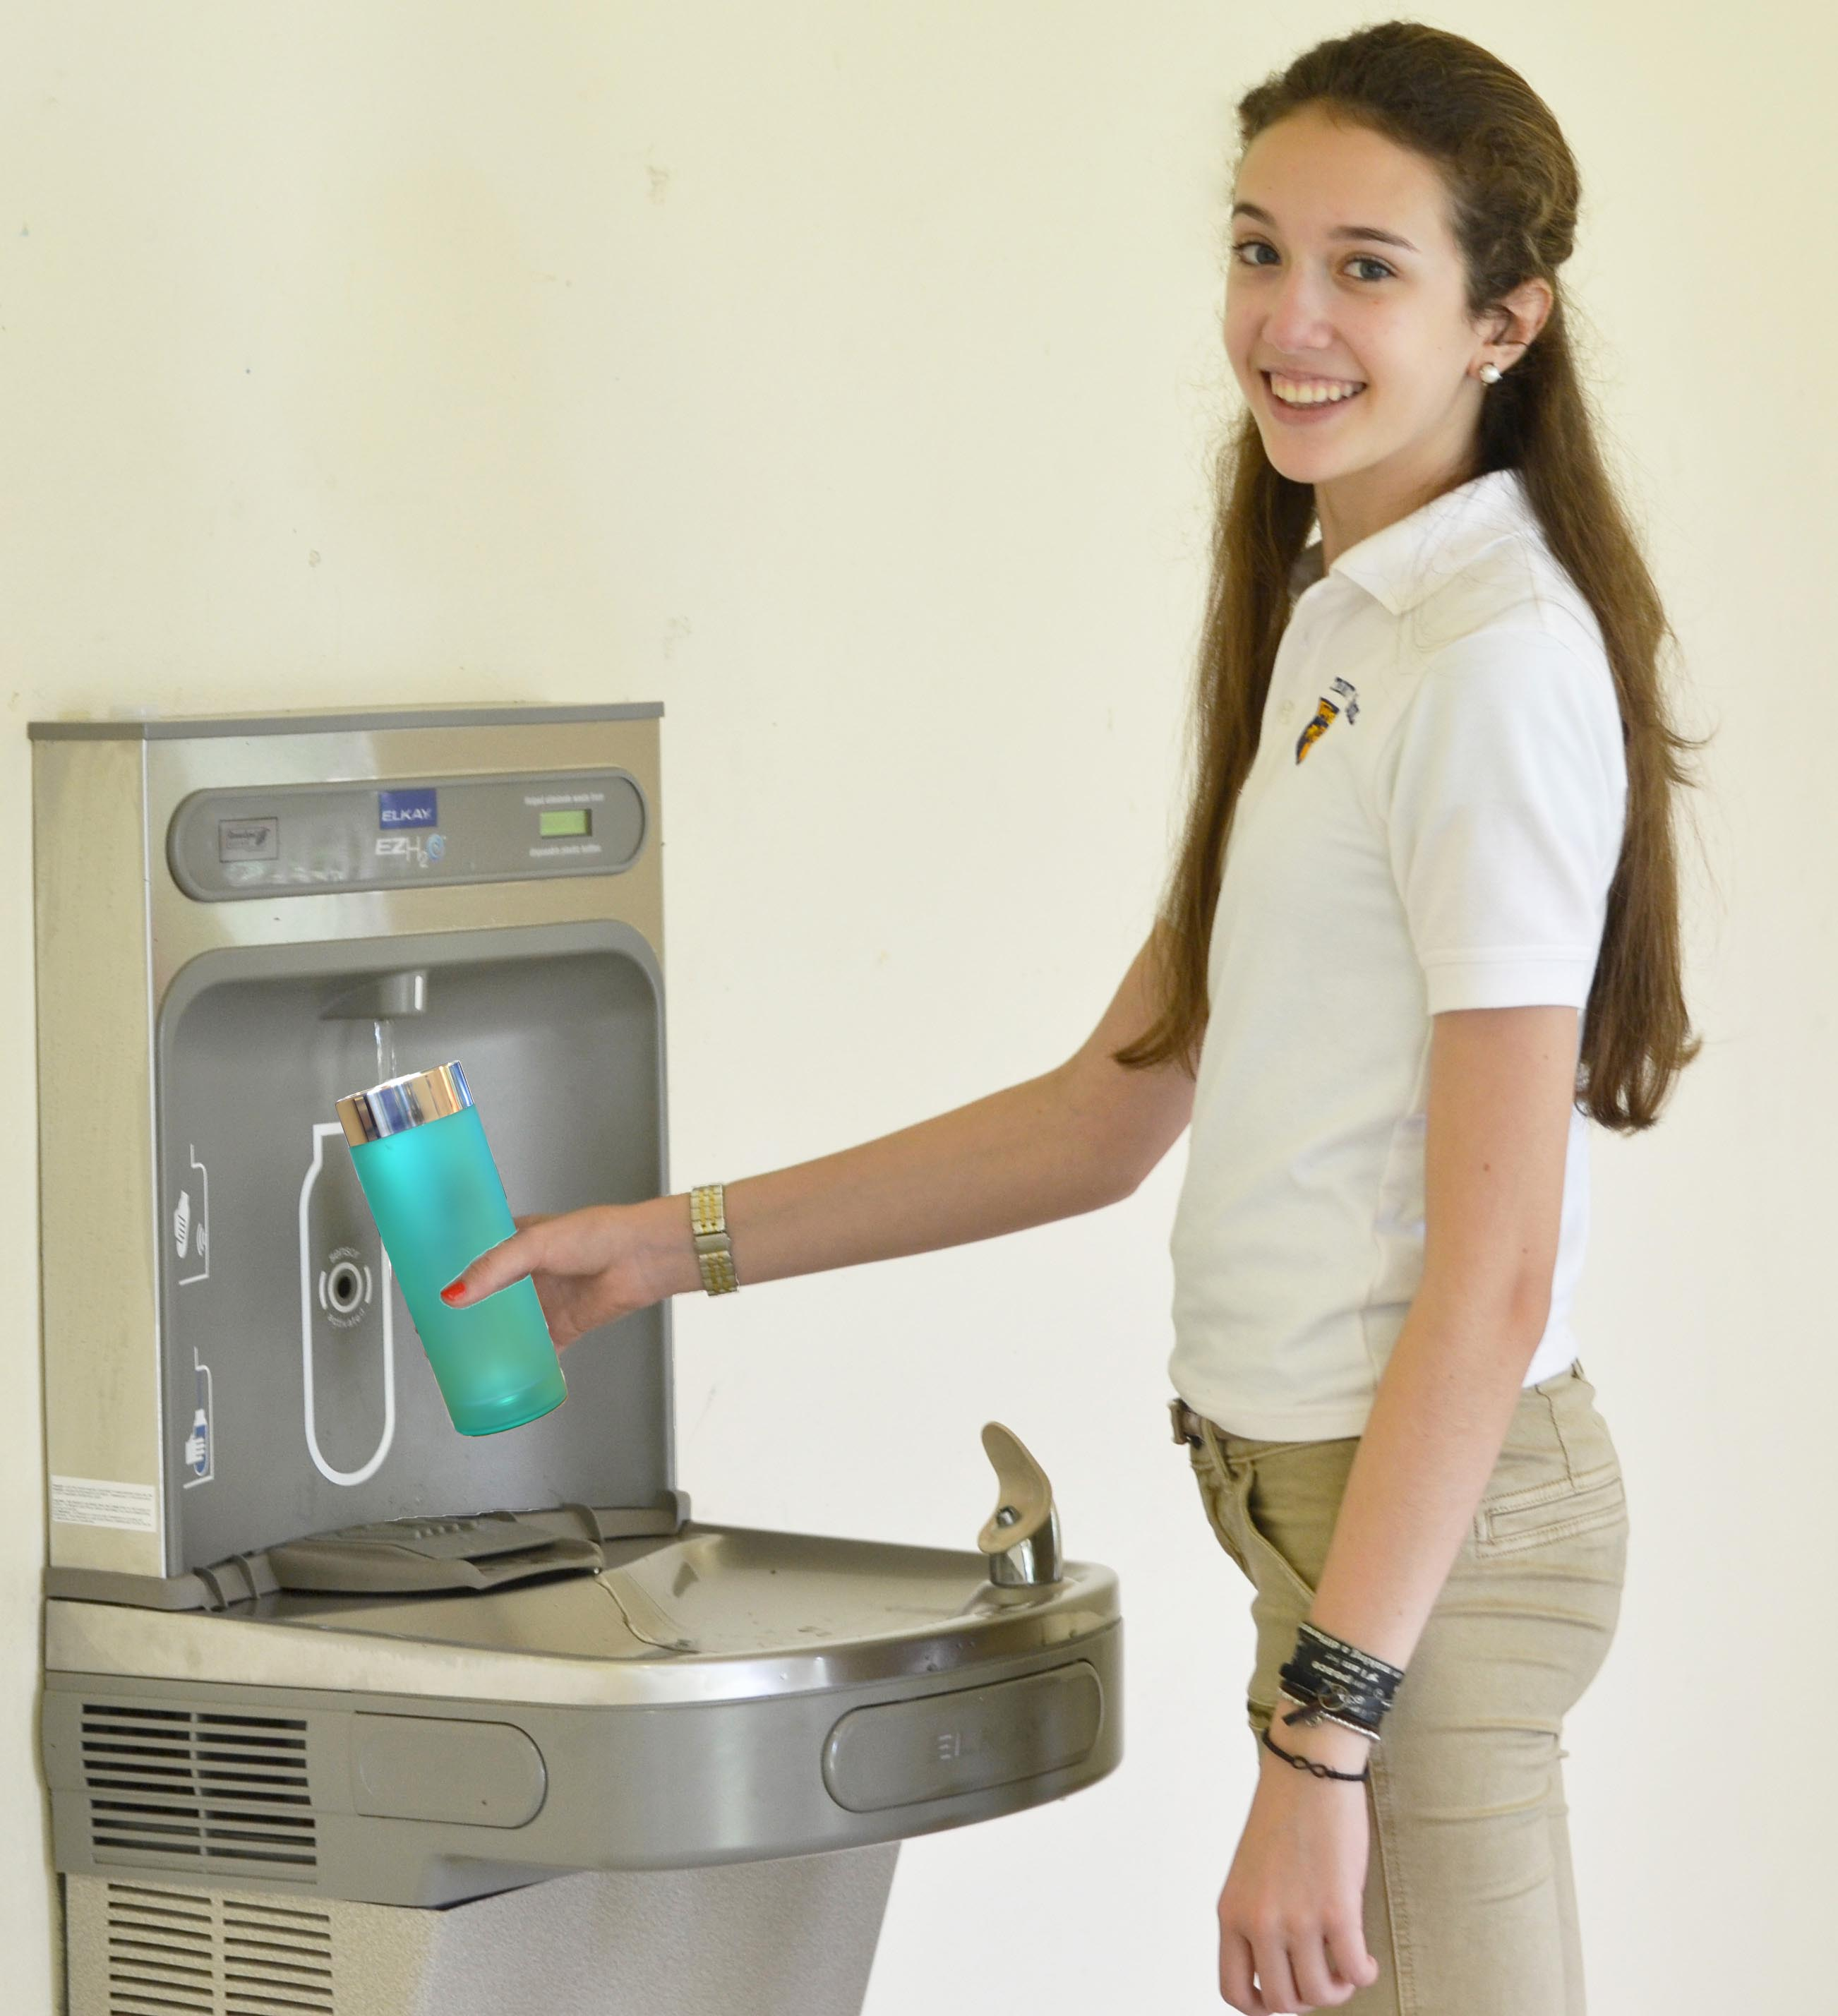 Eco Friendly Water Fountains for Schools